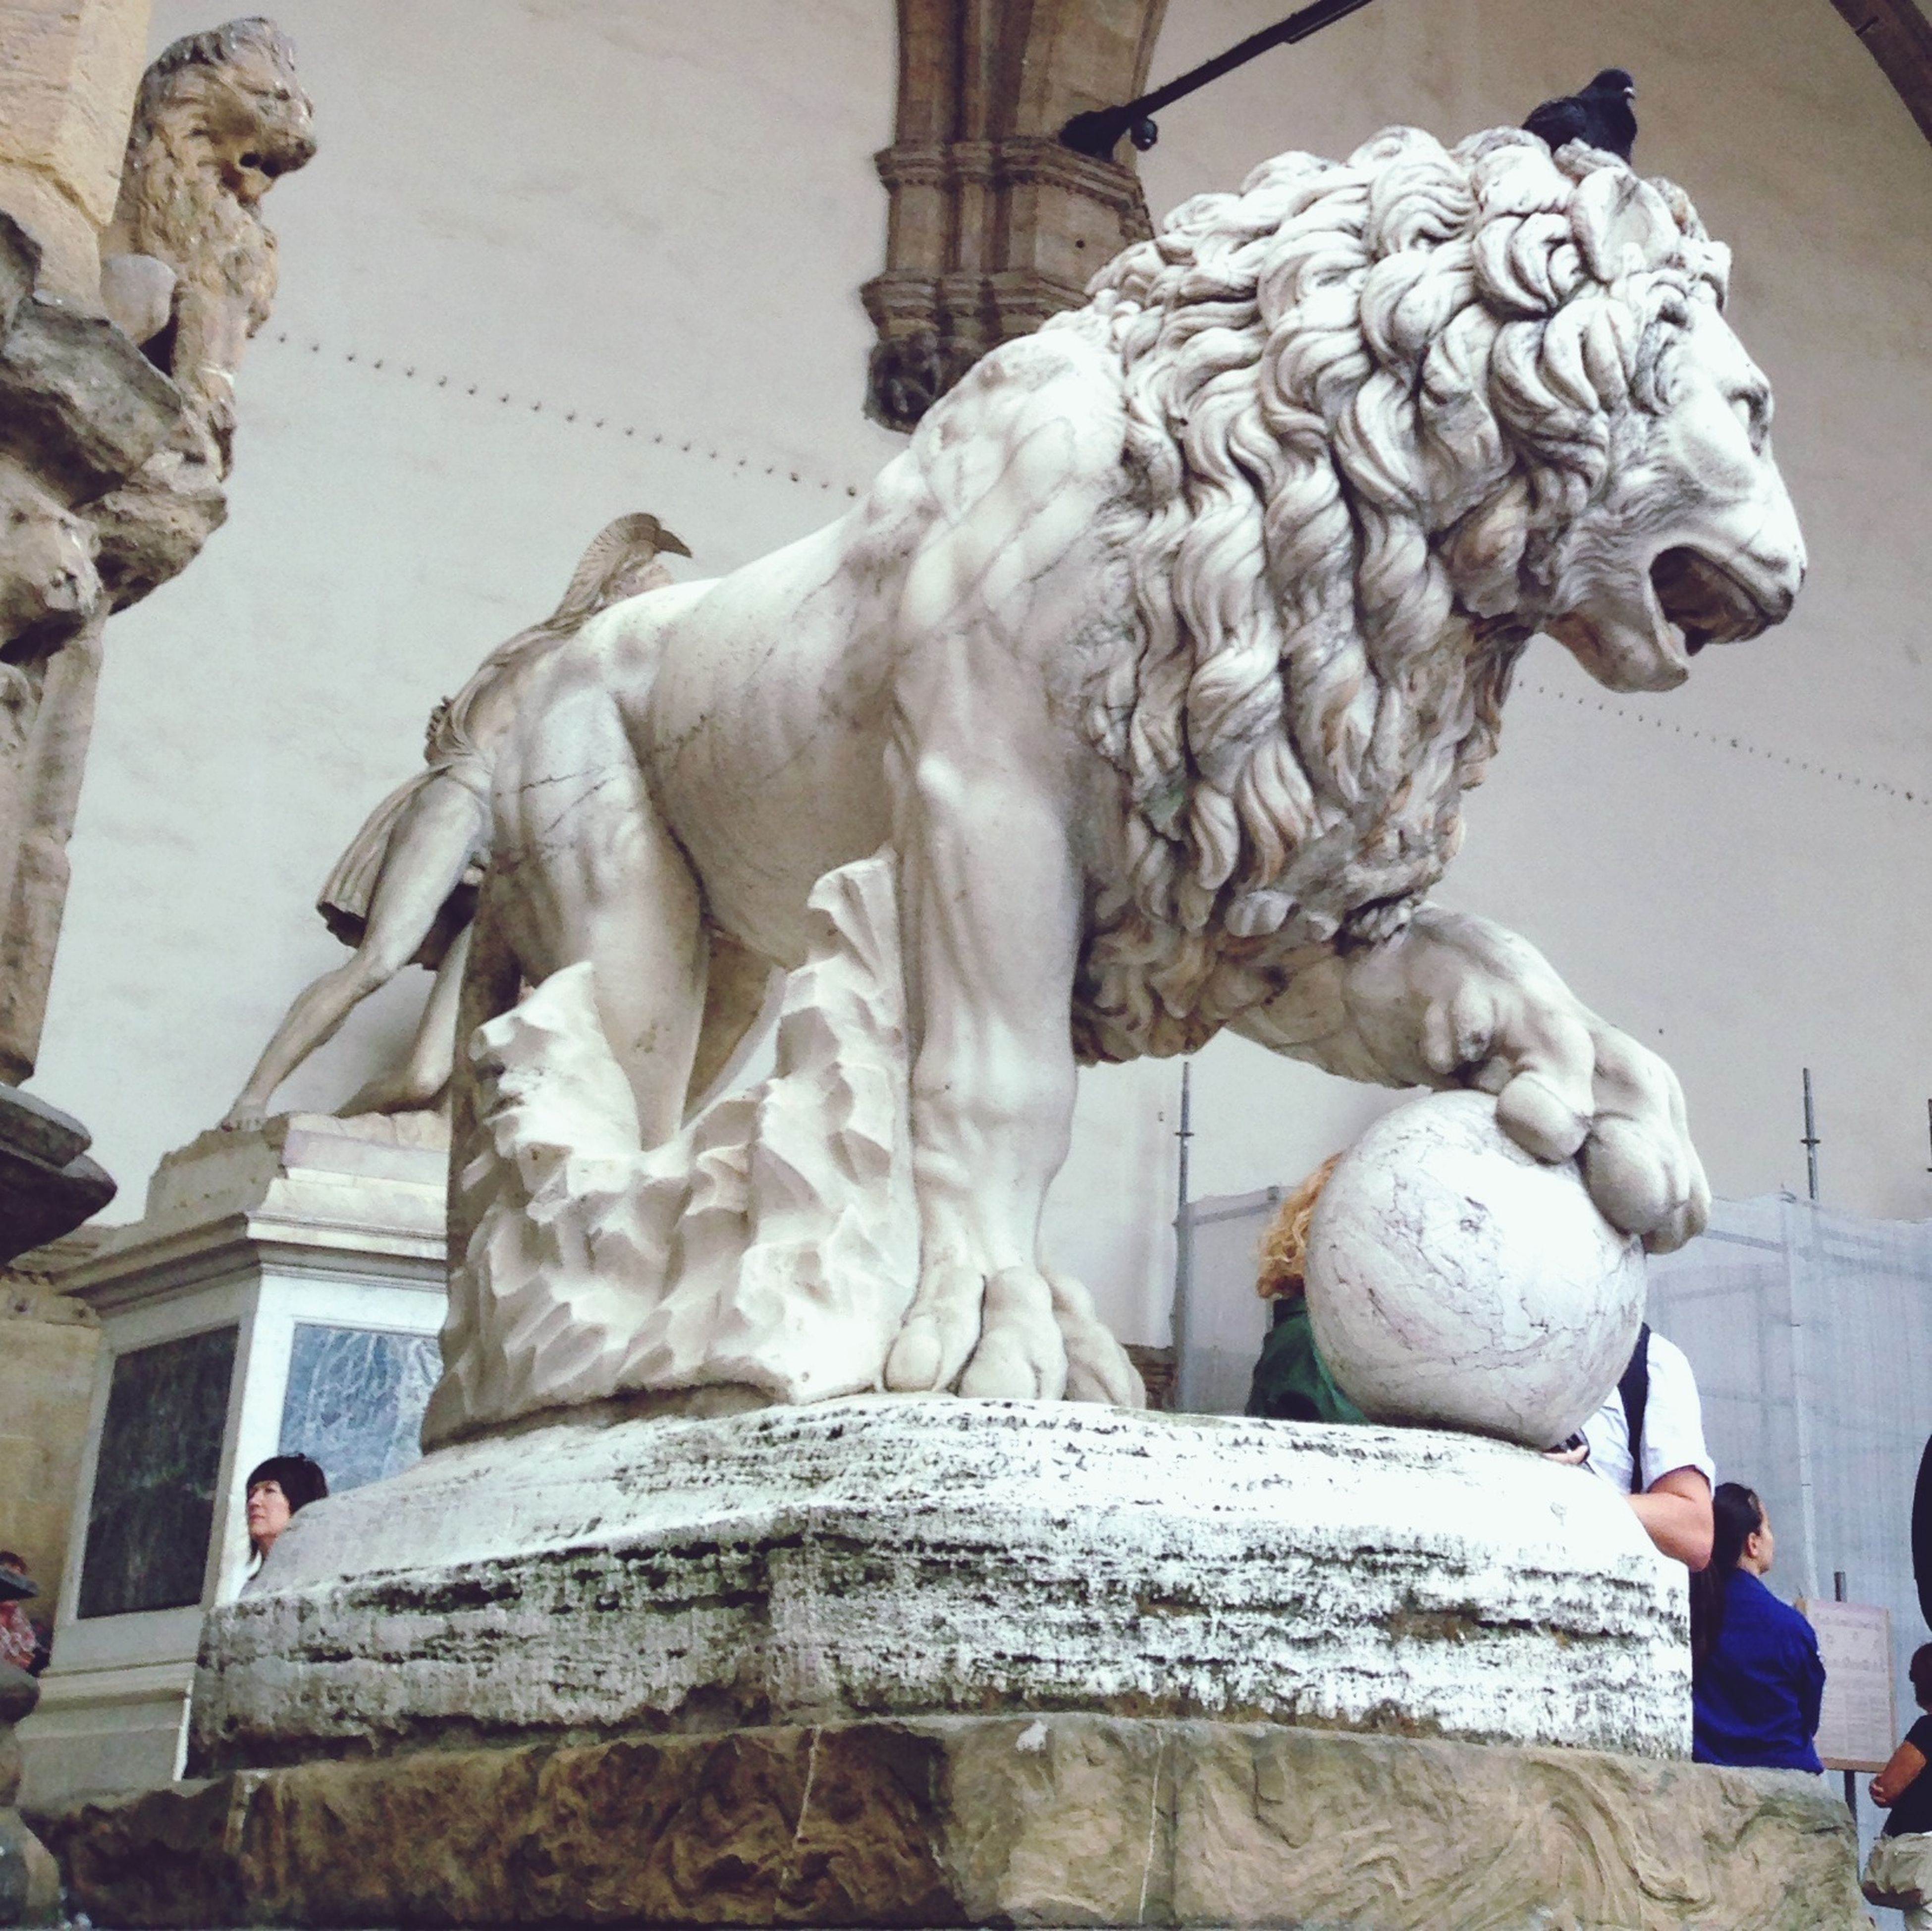 statue, sculpture, human representation, art and craft, art, creativity, architecture, built structure, building exterior, famous place, animal representation, carving - craft product, low angle view, travel destinations, history, craft, tourism, travel